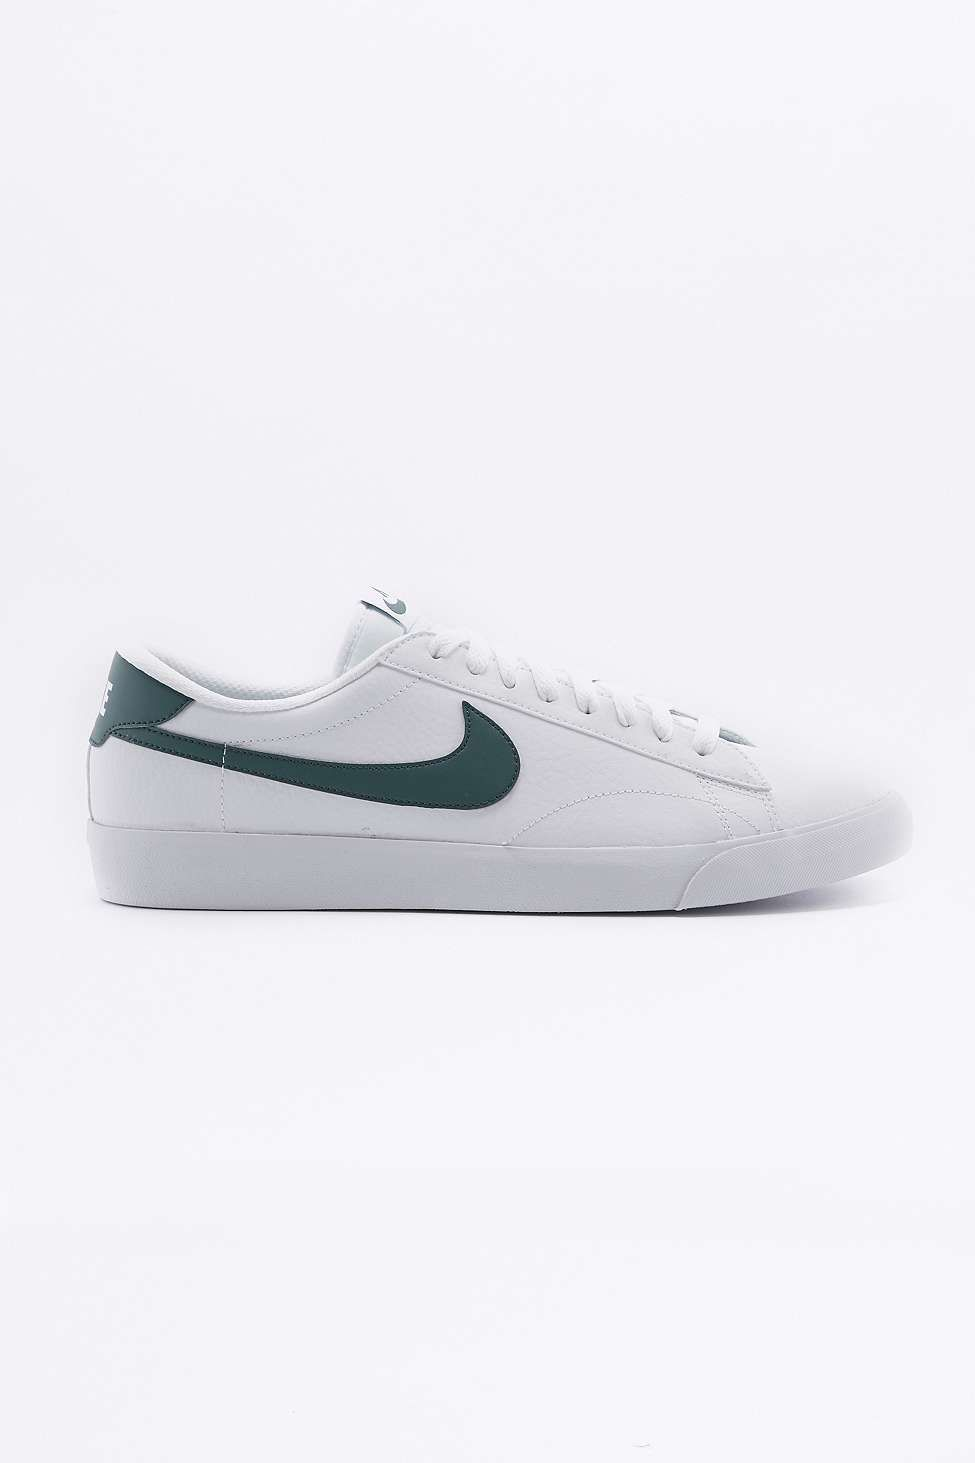 innovative design ba35a 655bd Nike Tennis Classic AC ND White and Green Trainers - Urban Outfitters